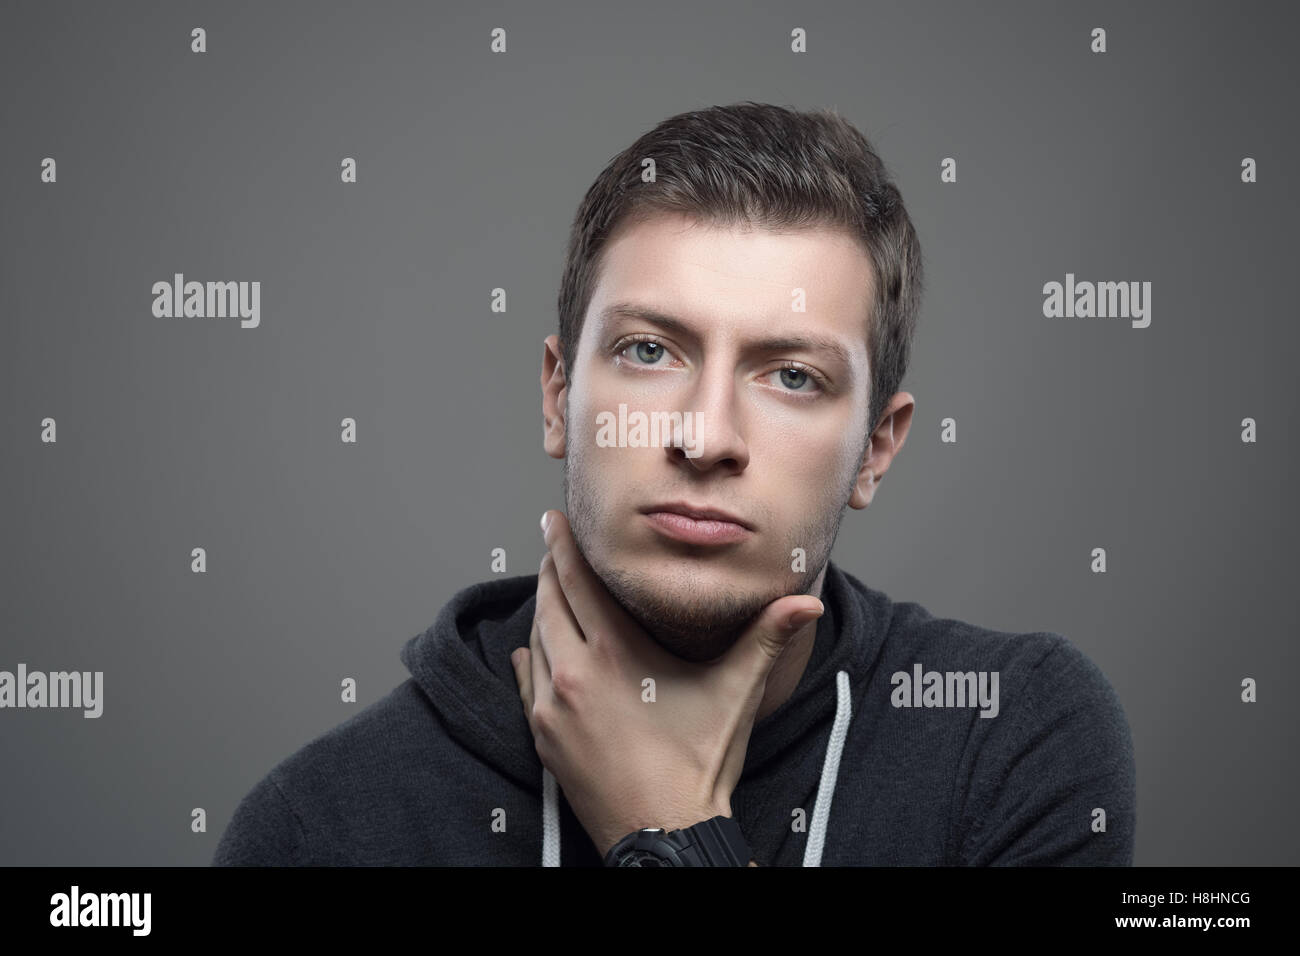 Moody portrait of serious young unshaven man with hand under chin looking at camera - Stock Image